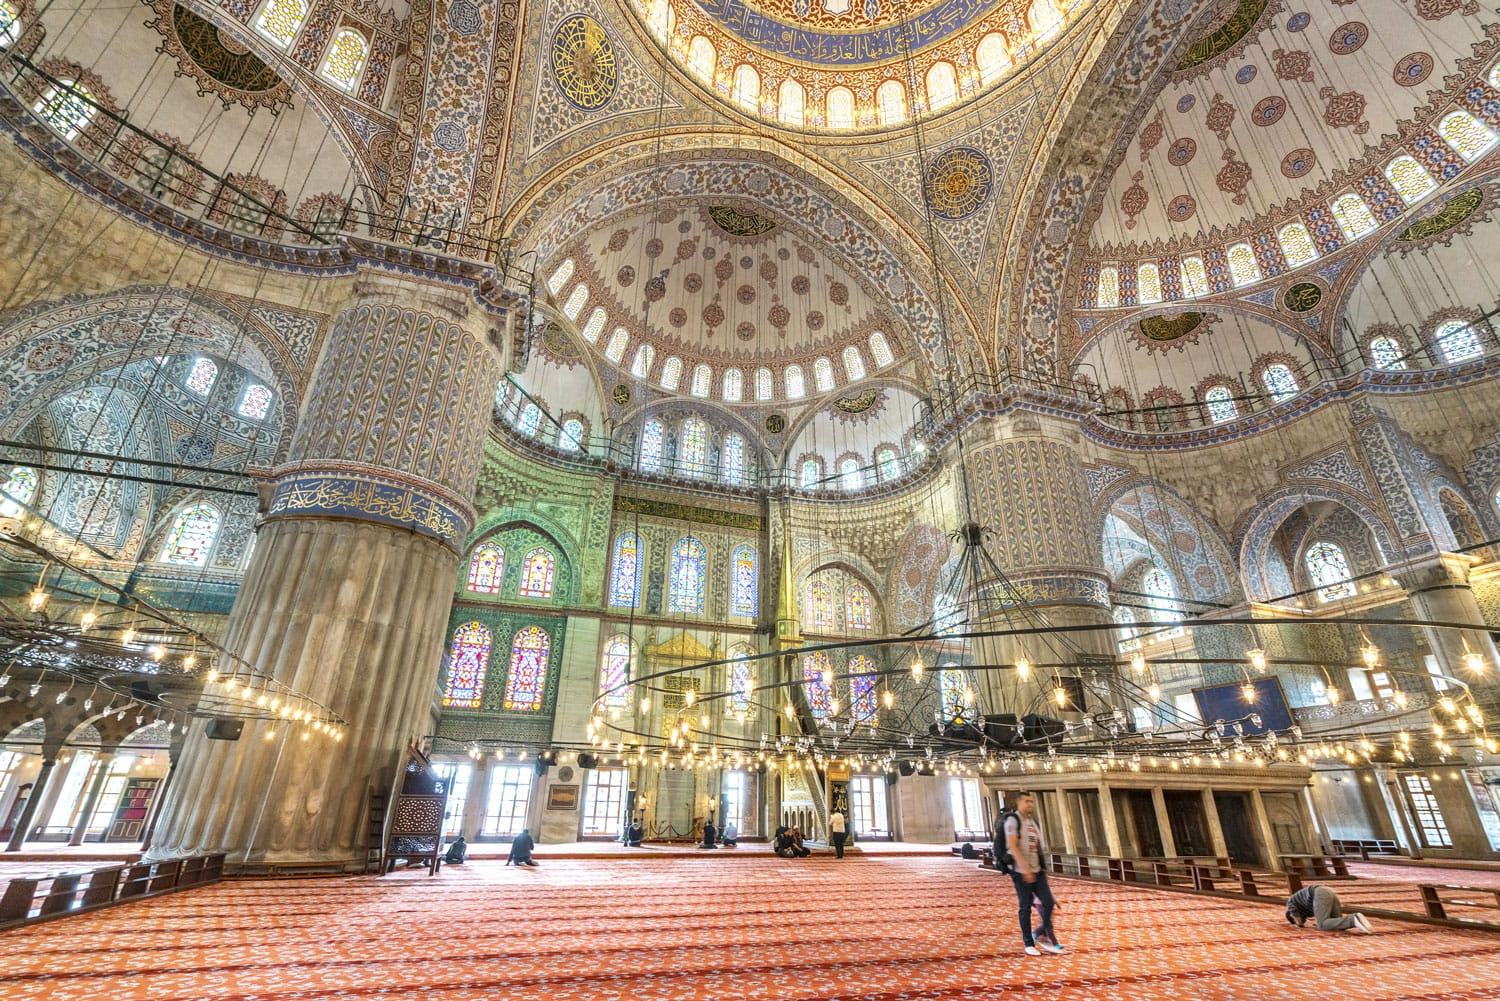 Interior view of the Sultanahmet Mosque (Blue Mosque) in Istanbul, Turkey